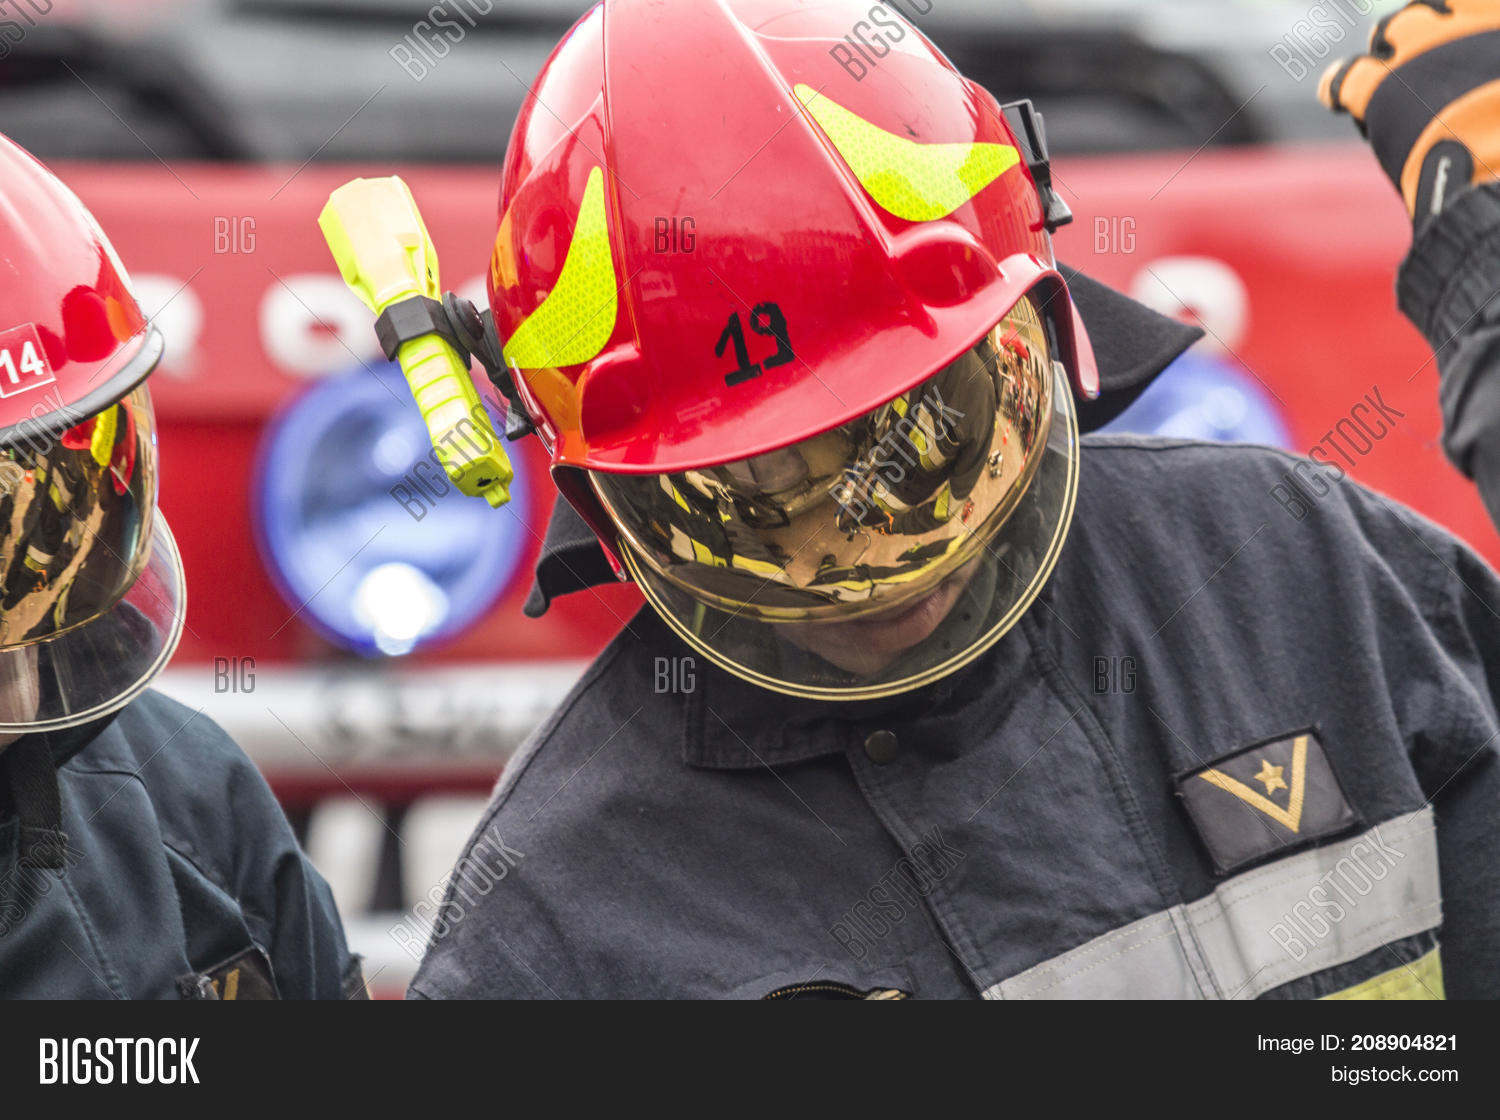 Firefighters Working Image & Photo (Free Trial)   Bigstock